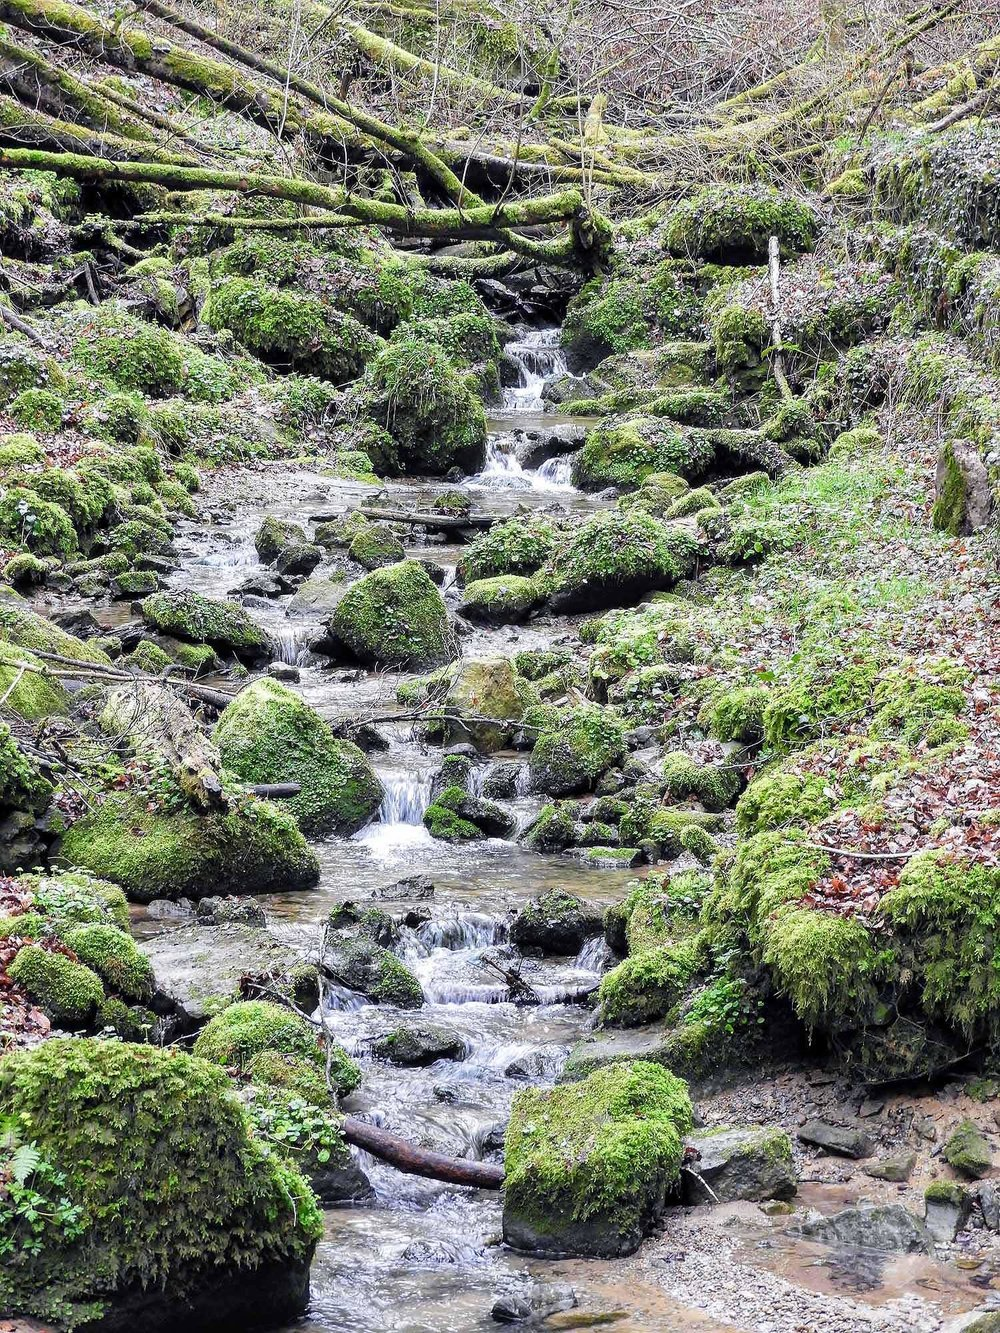 luxembourg-hike-hohllay-caves-echternach-little-switzerland-green-stream.jpg